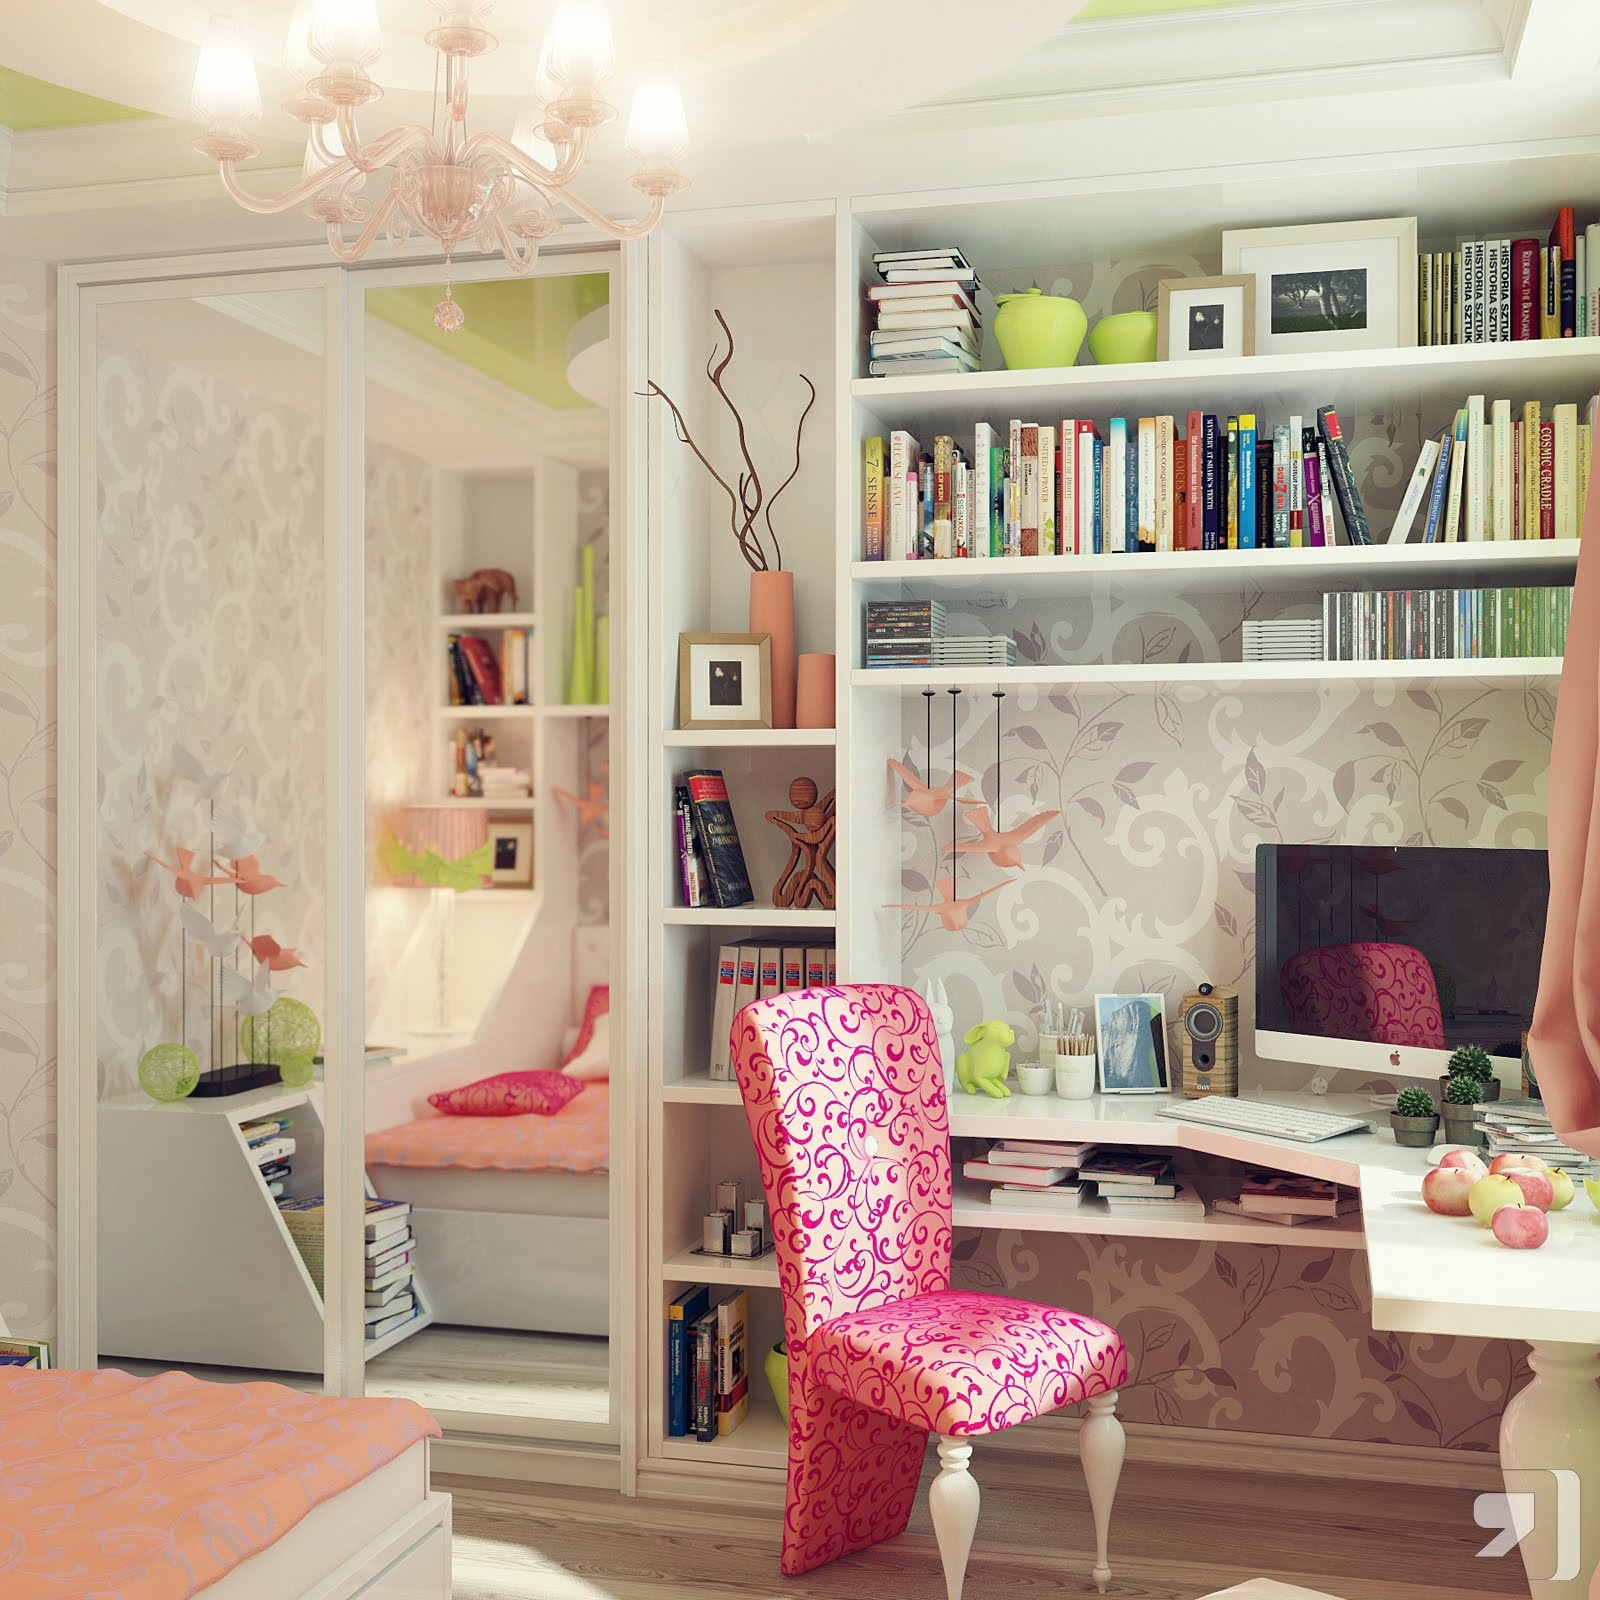 1b-Bespoke-white-corner-desk-pink-chair